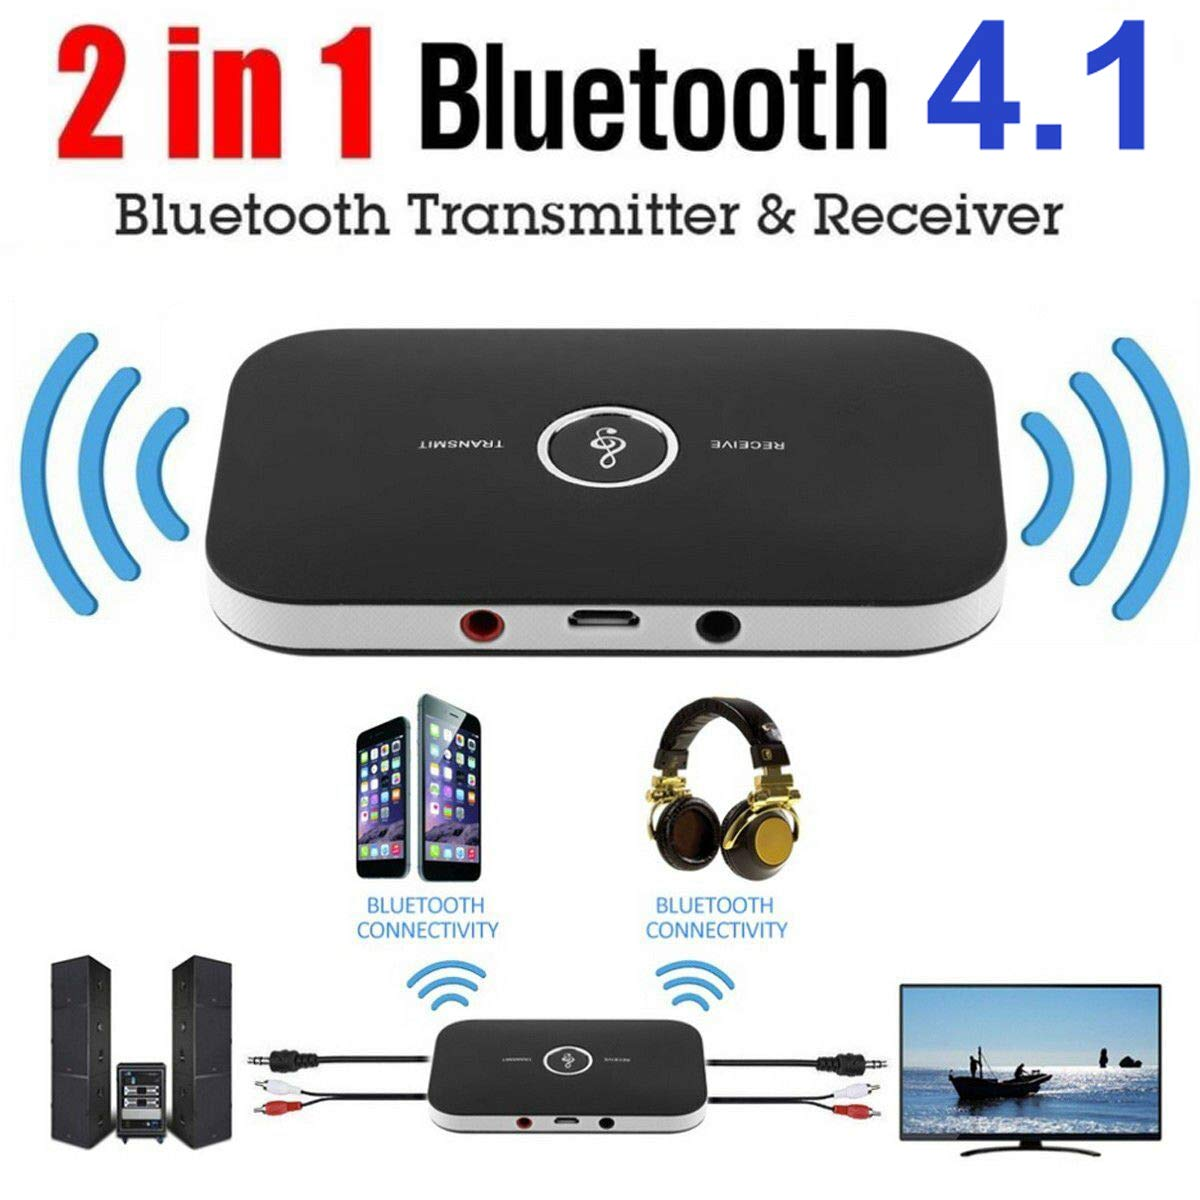 2in1 Bluetooth Transmitter Receiver Wireless Receptor Sound Stereo Audio Adapter